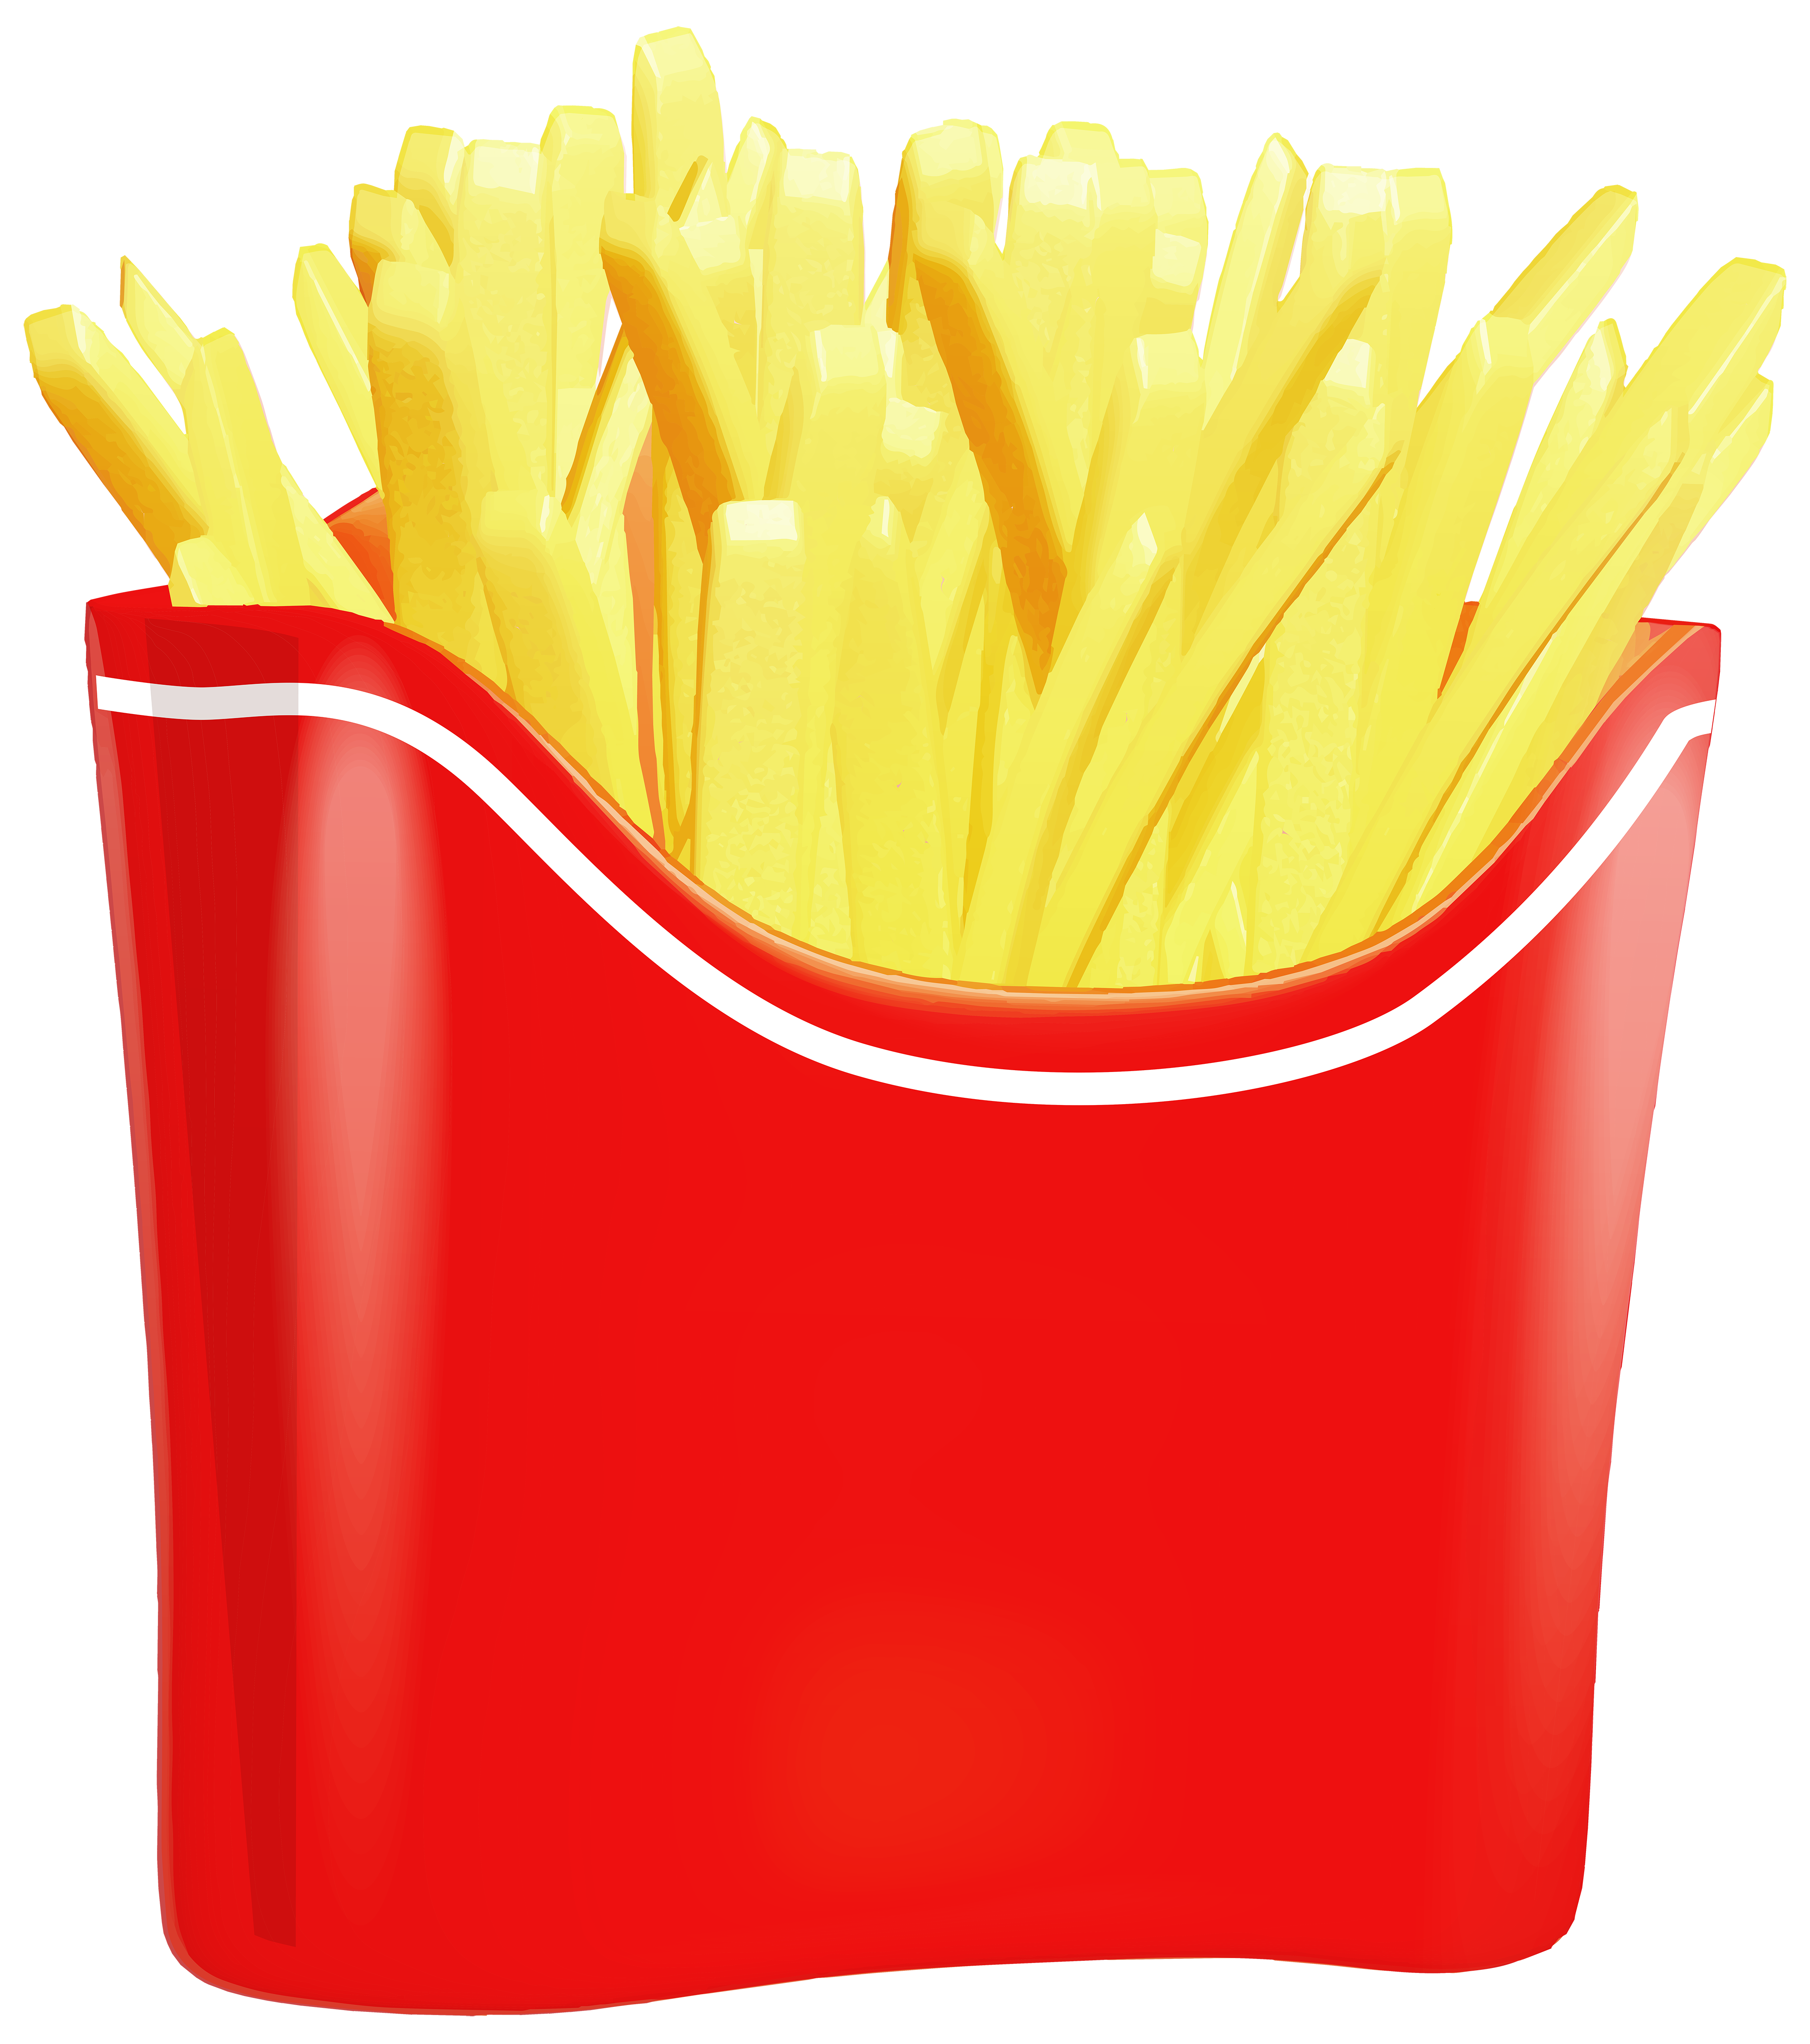 Images Of French Fries download best Images Of French Fries 4000x4517